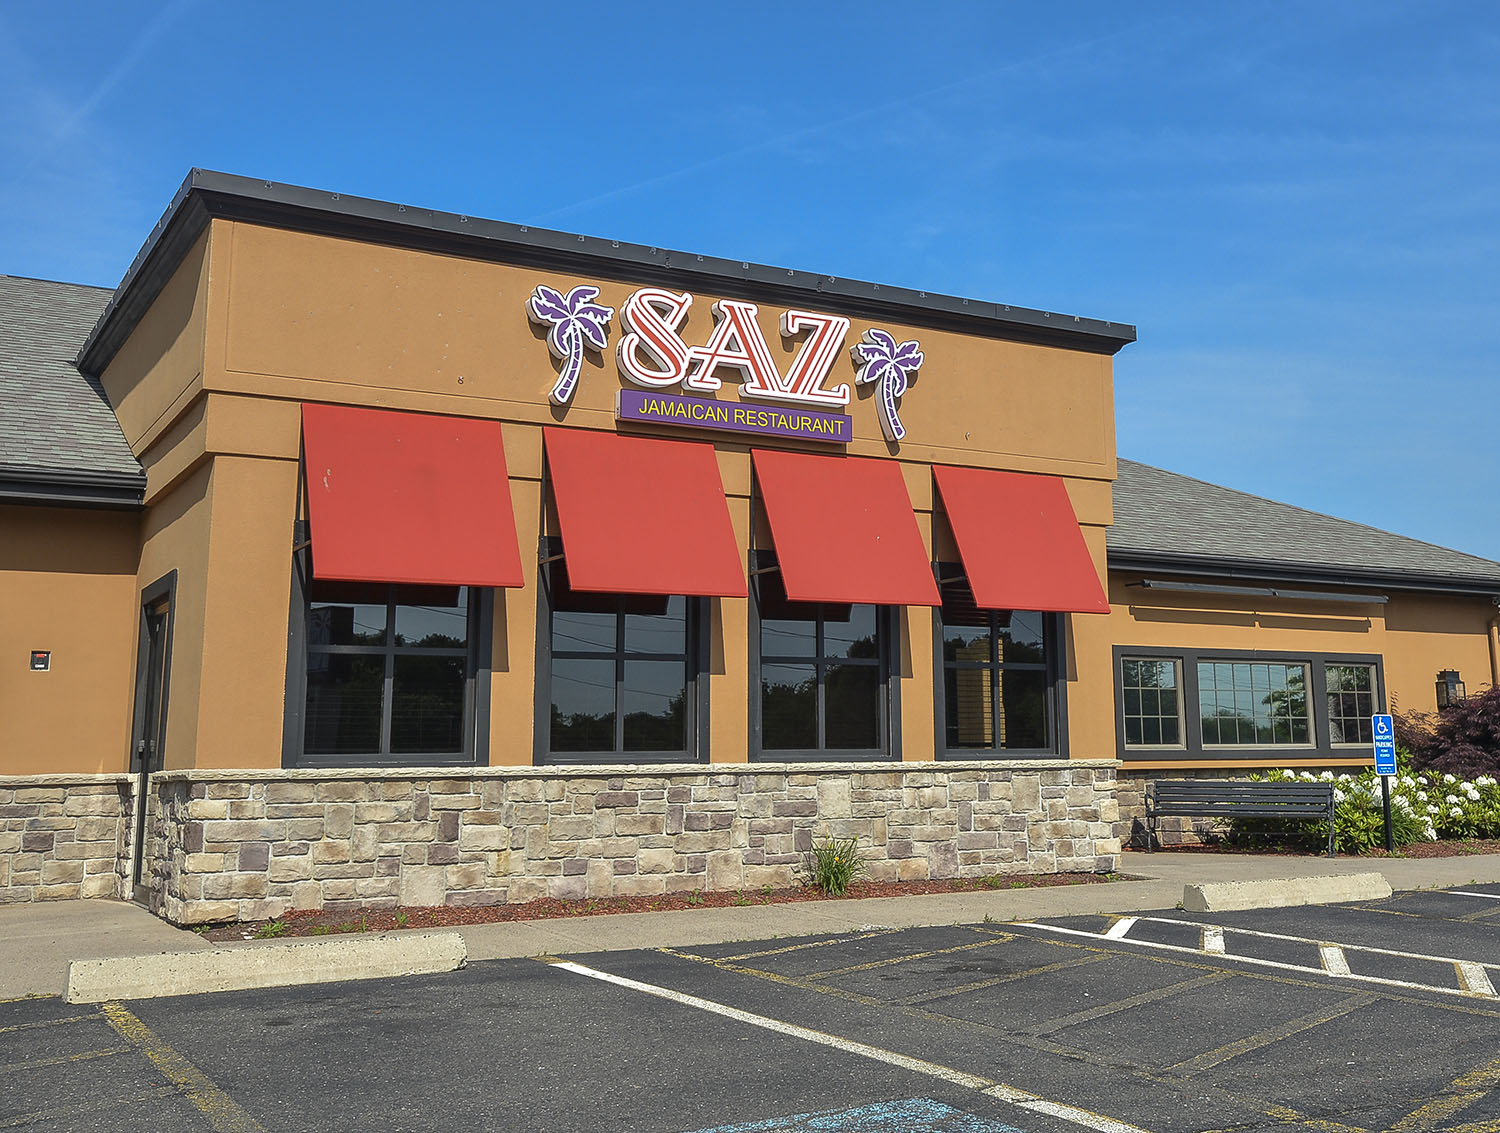 Nearby: Saz Jamaican Restaurant